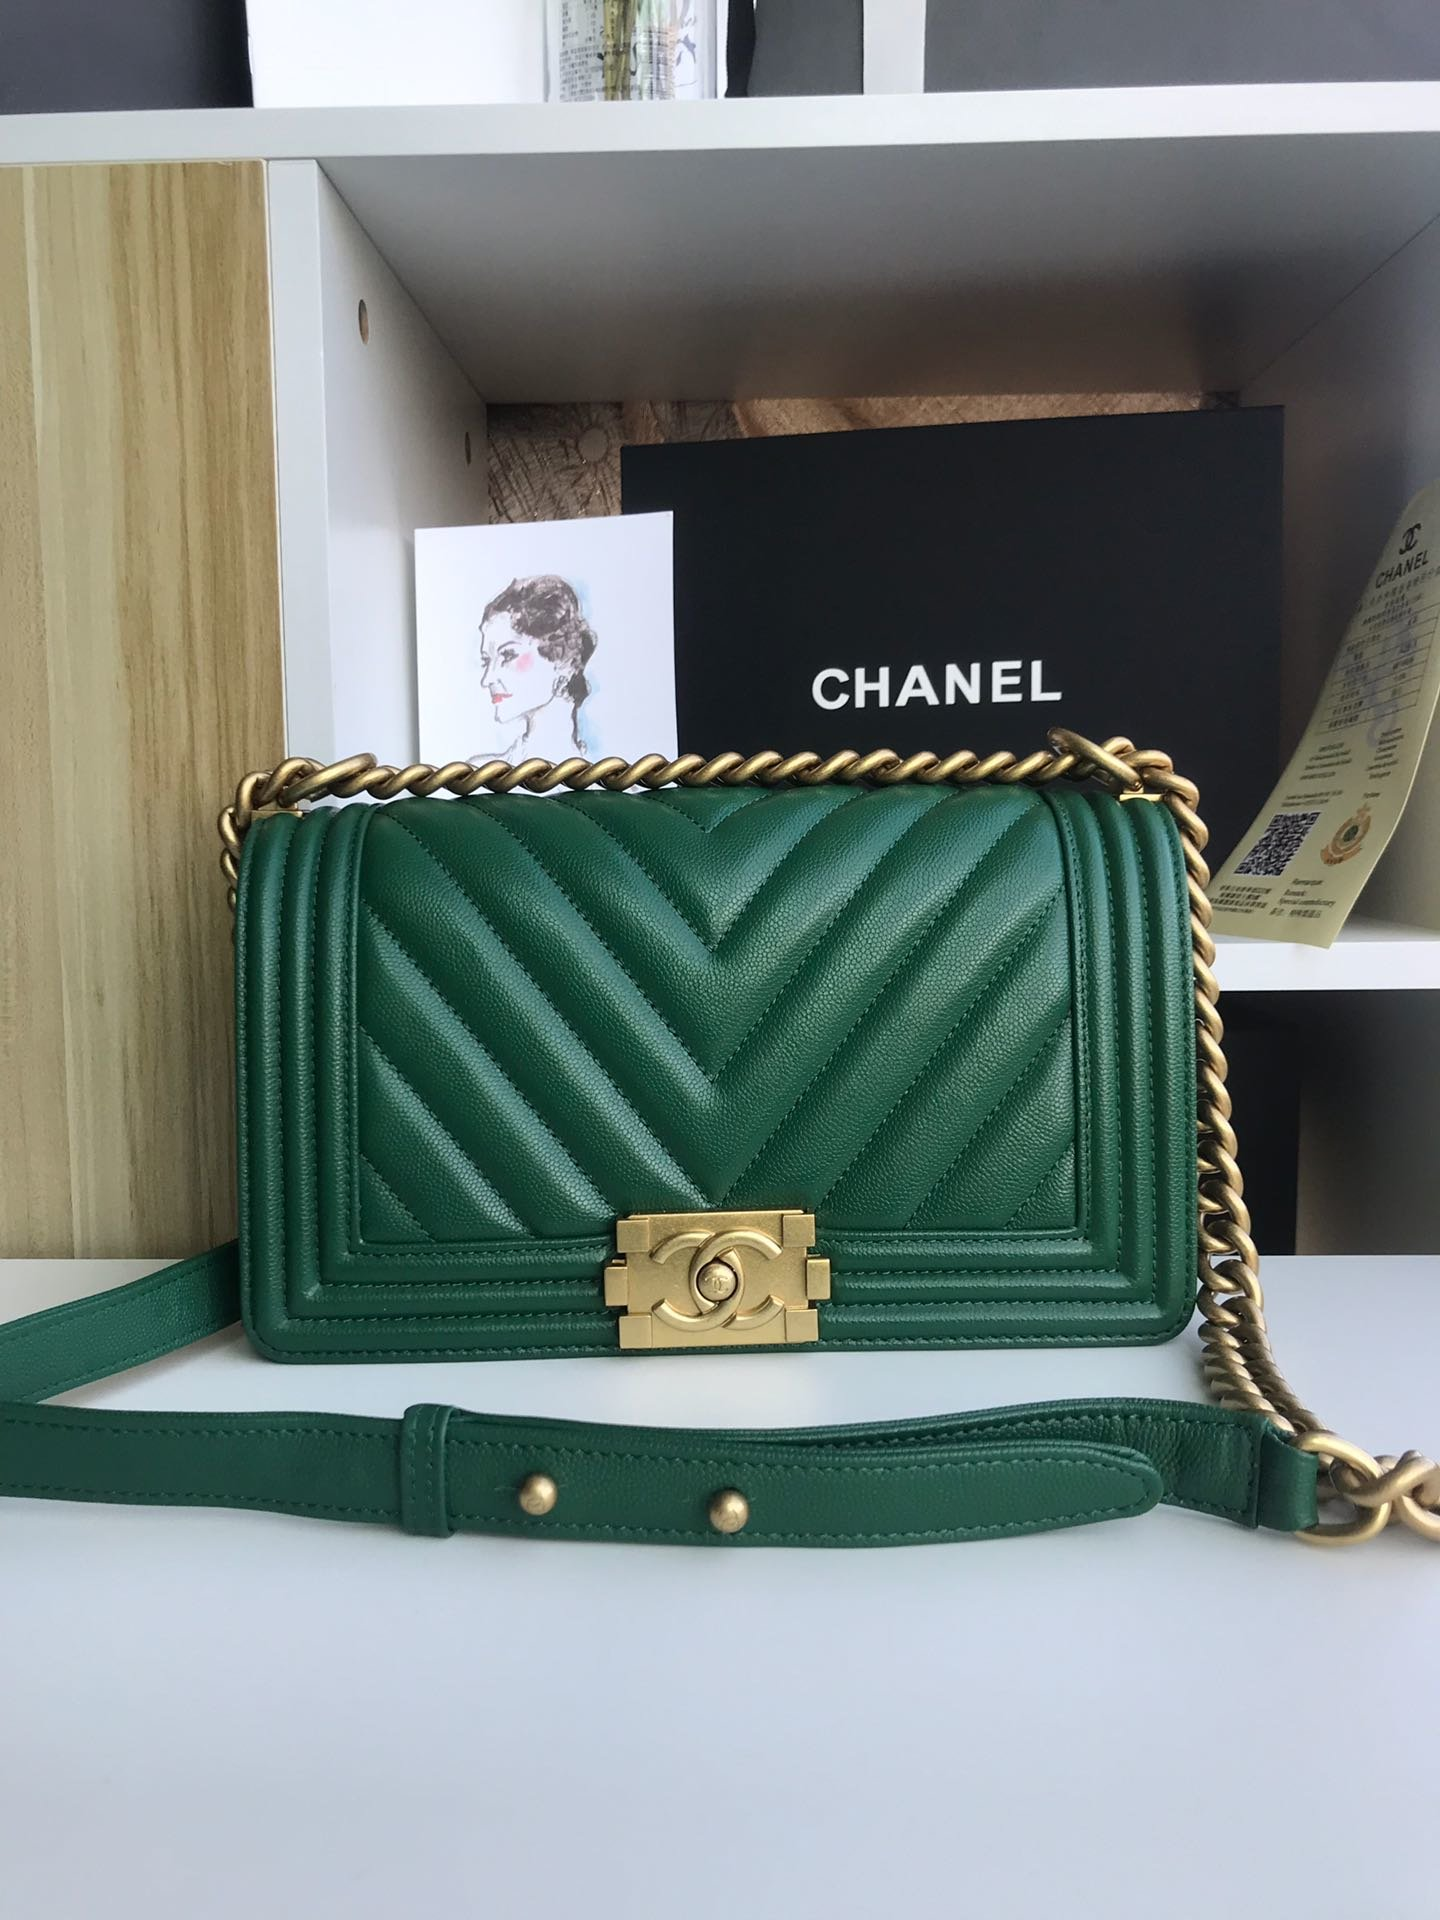 Replica 25cm V Boy Chanel Handbag Green Grained Calfskin Gold Tone Metal